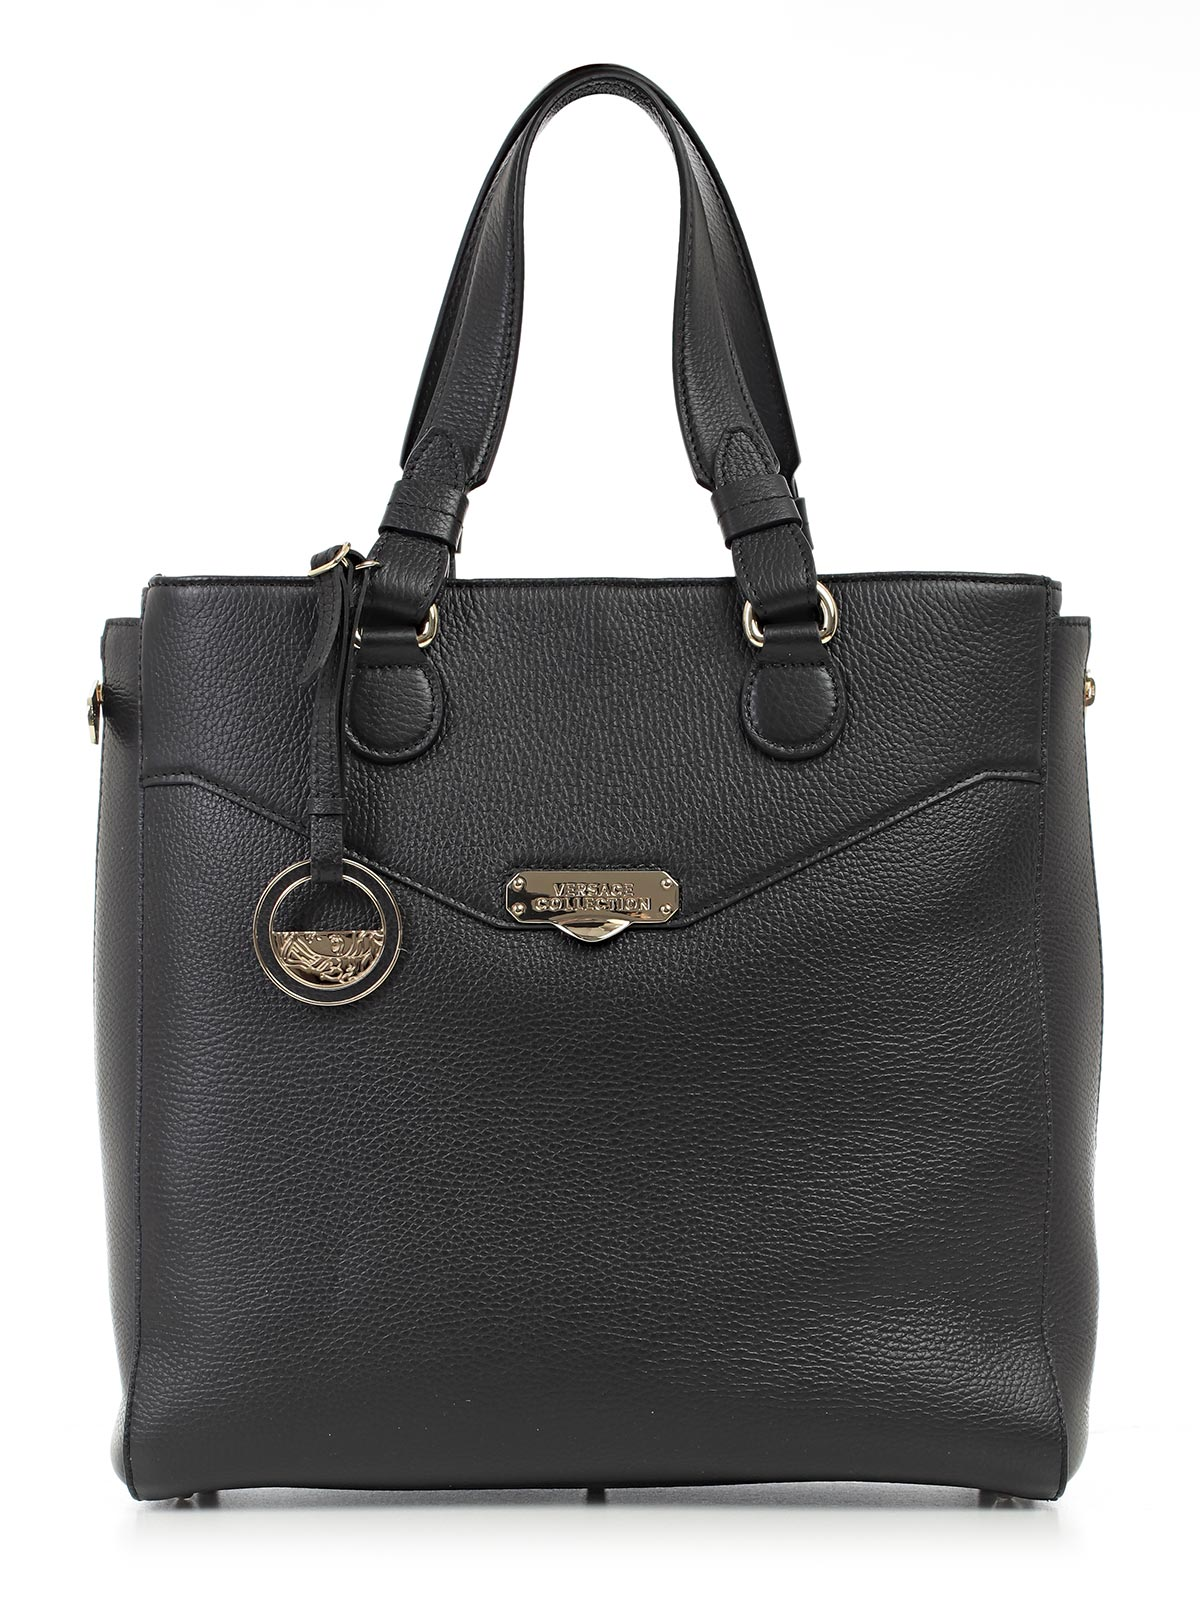 Picture of VERSACE COLLECTION Totes